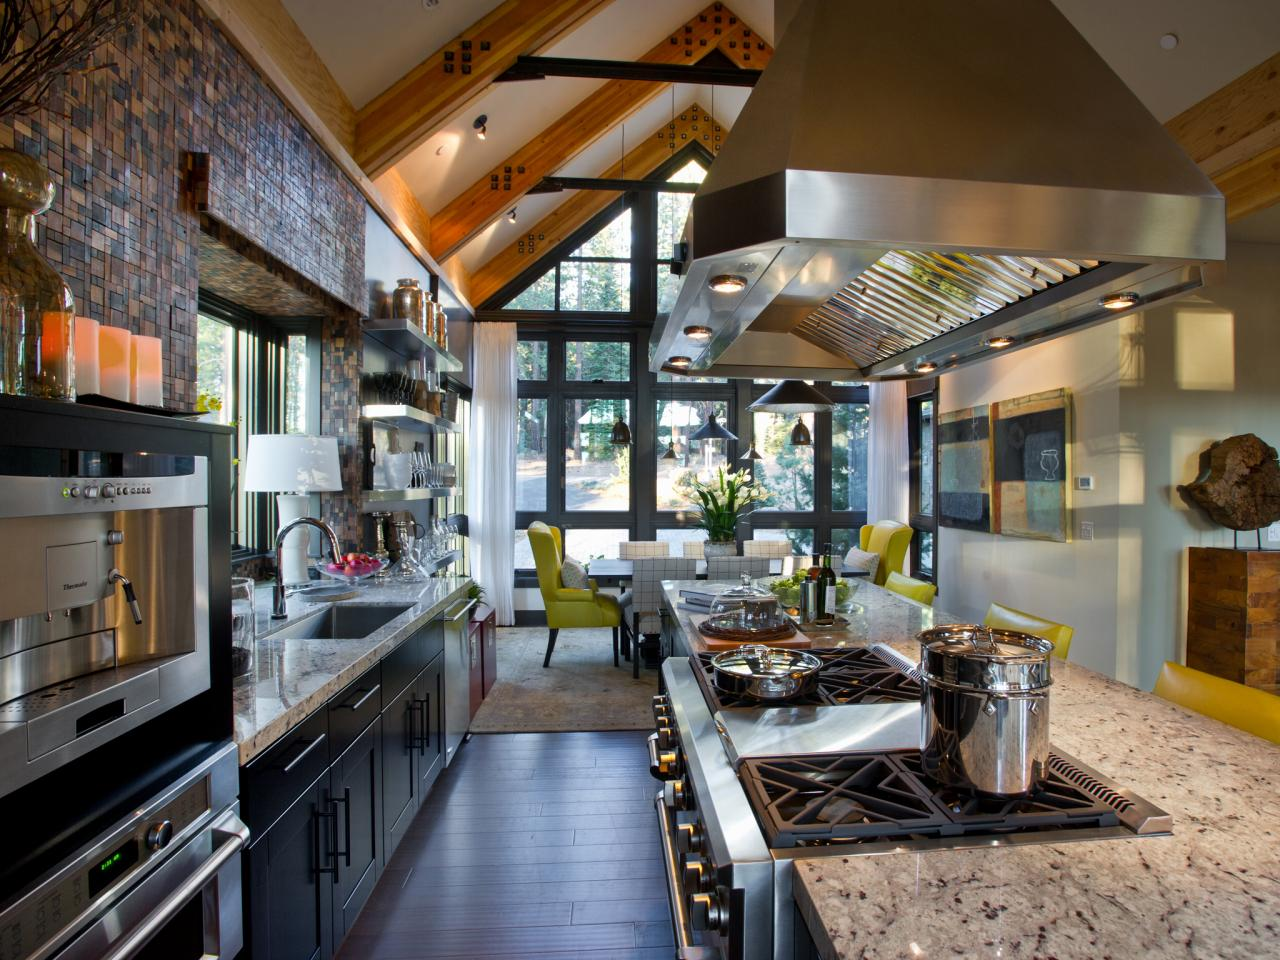 Galley kitchen with vaulted ceiling and stainless range for Hgtv kitchens